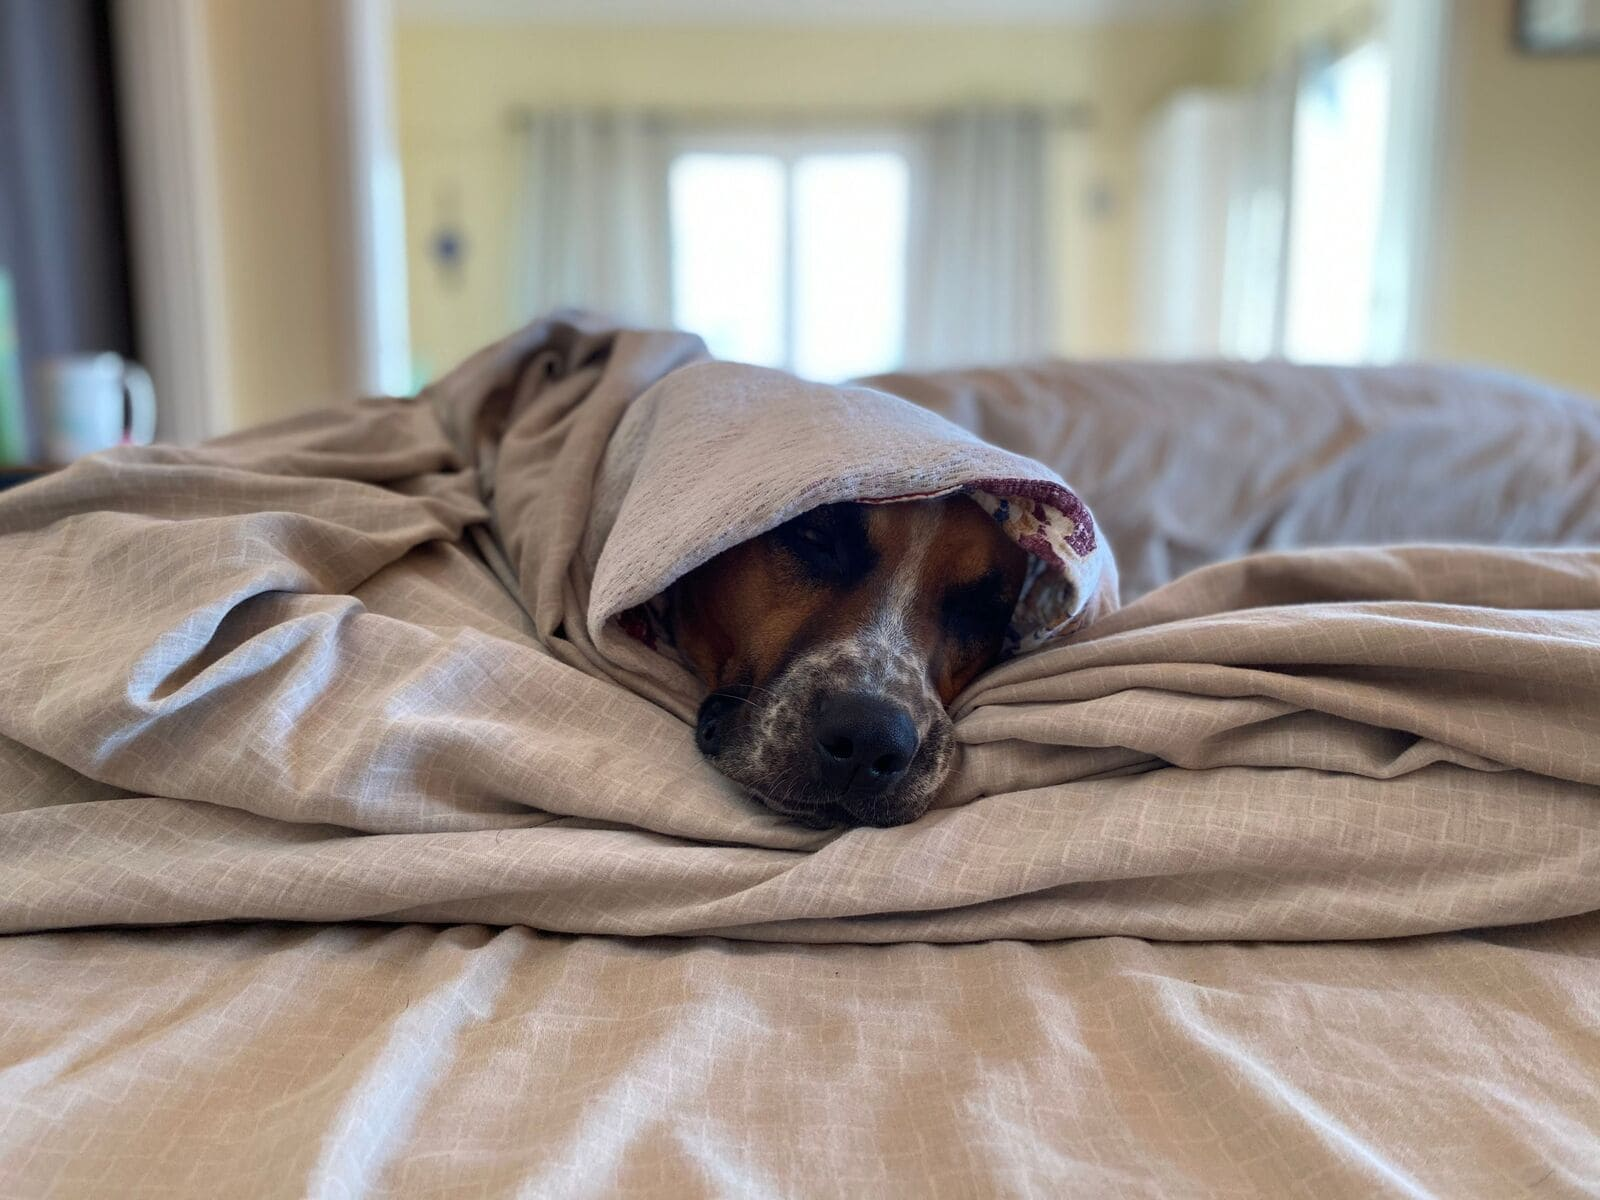 Dog wrapped in blankets